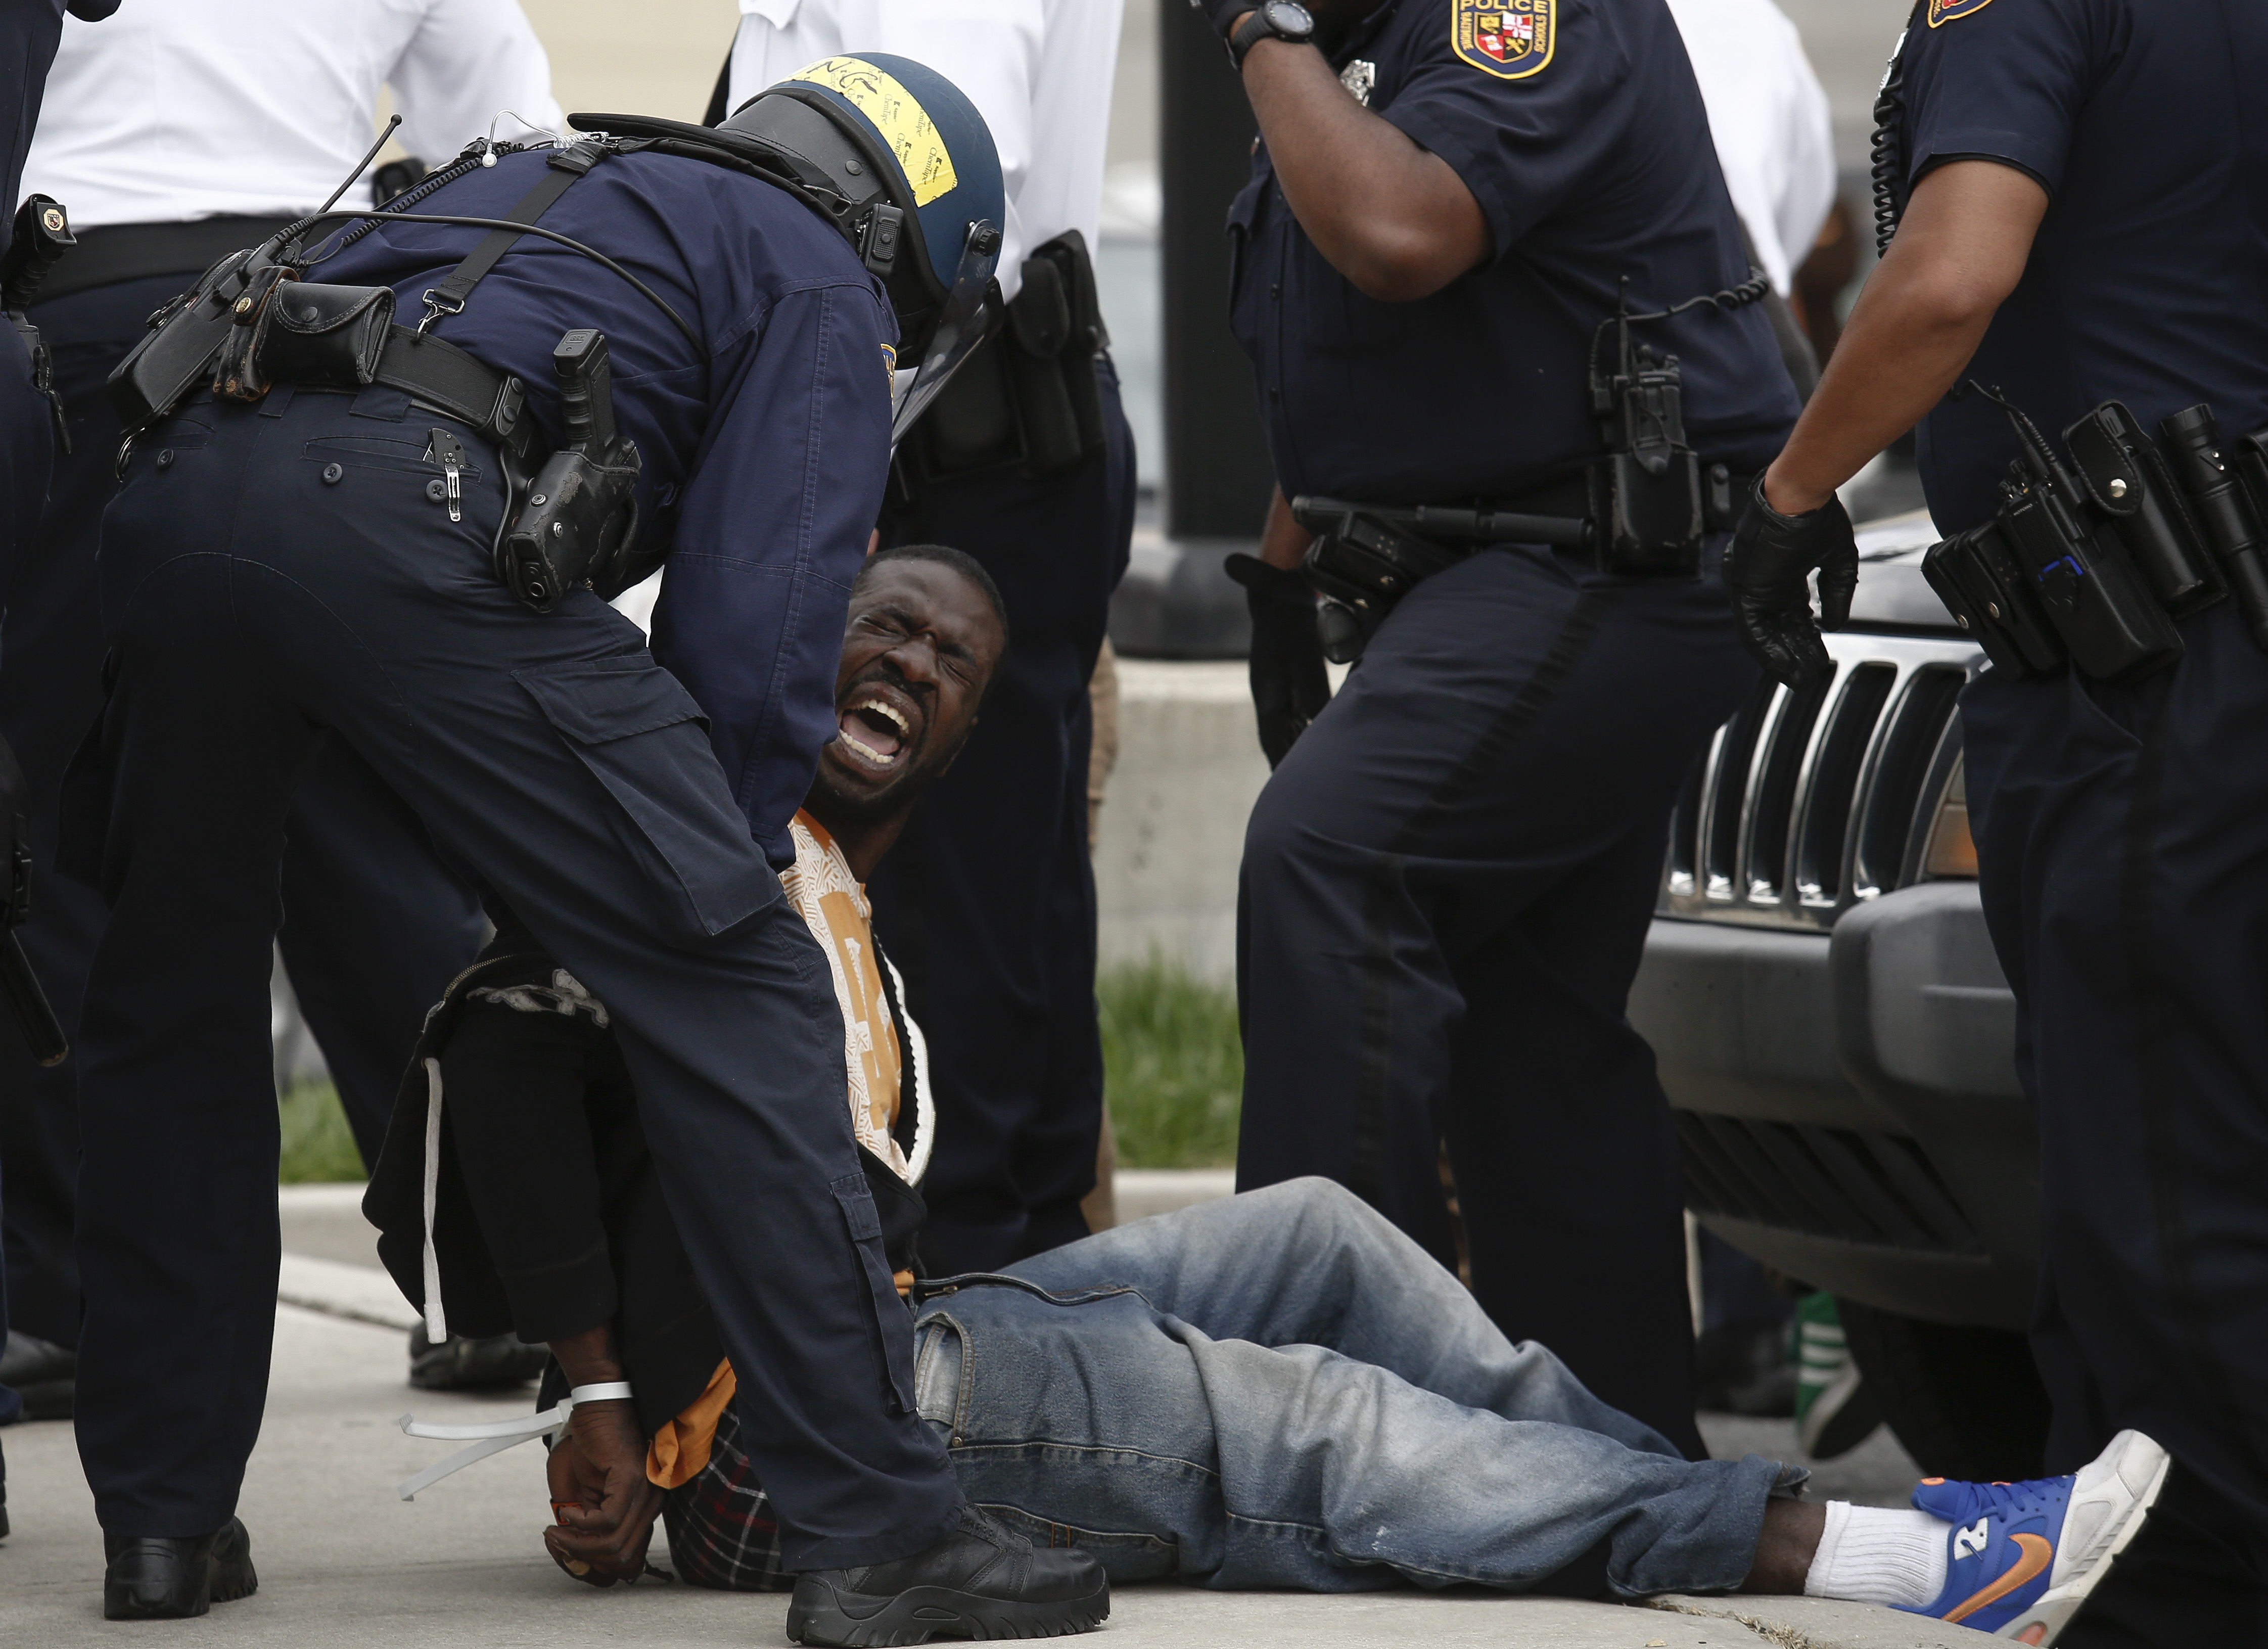 Police arrest a man at protests in Baltimore. (Getty)